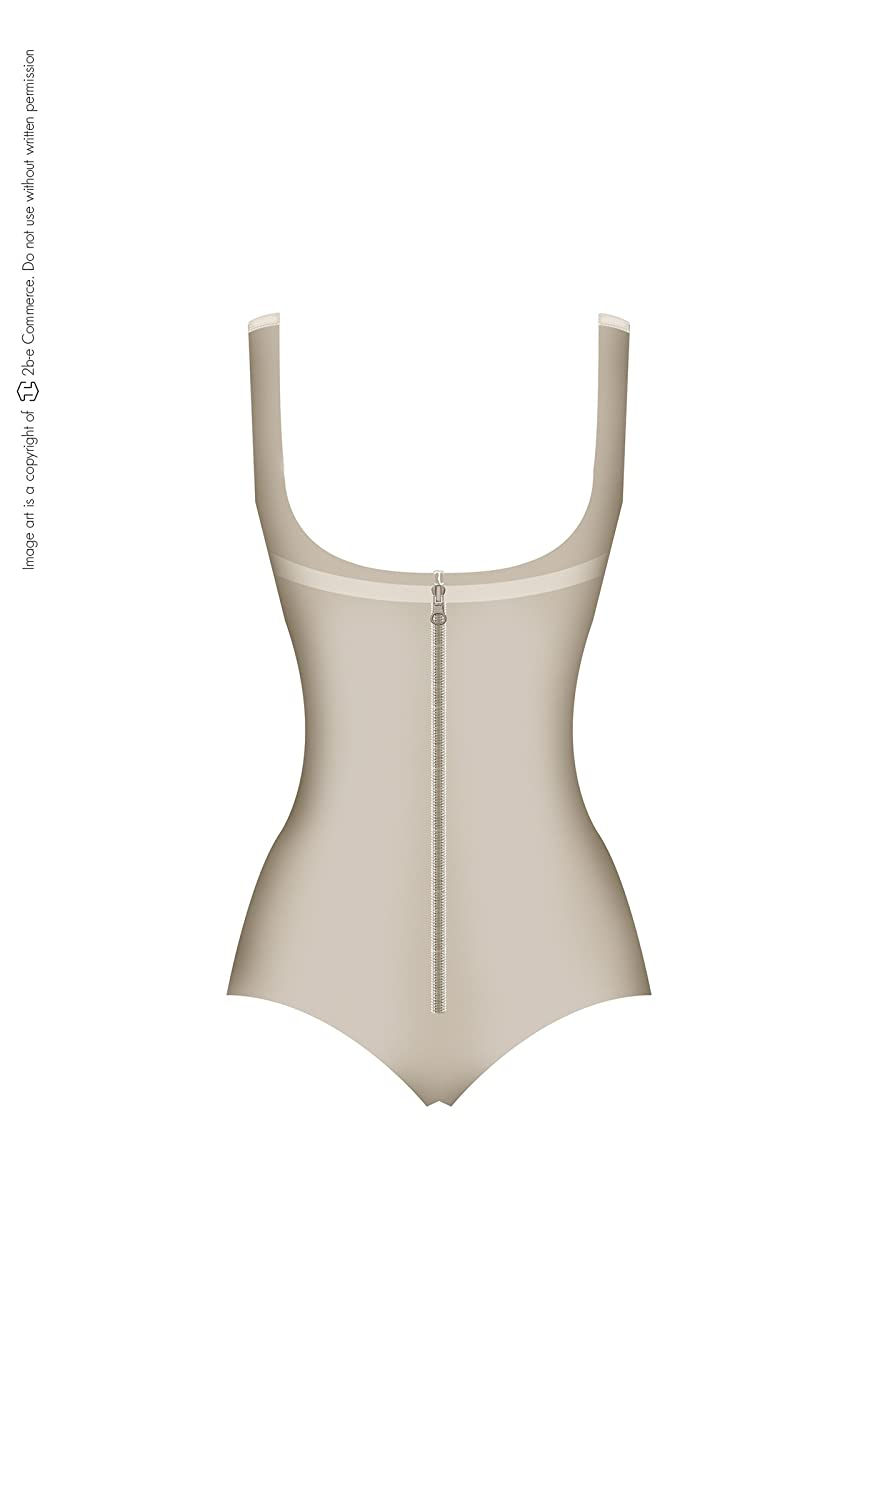 Salome 0419 Body Fajas Colombianas Reductoras Postparto Butt Lifter Body Shaper at Amazon Women's Clothing store